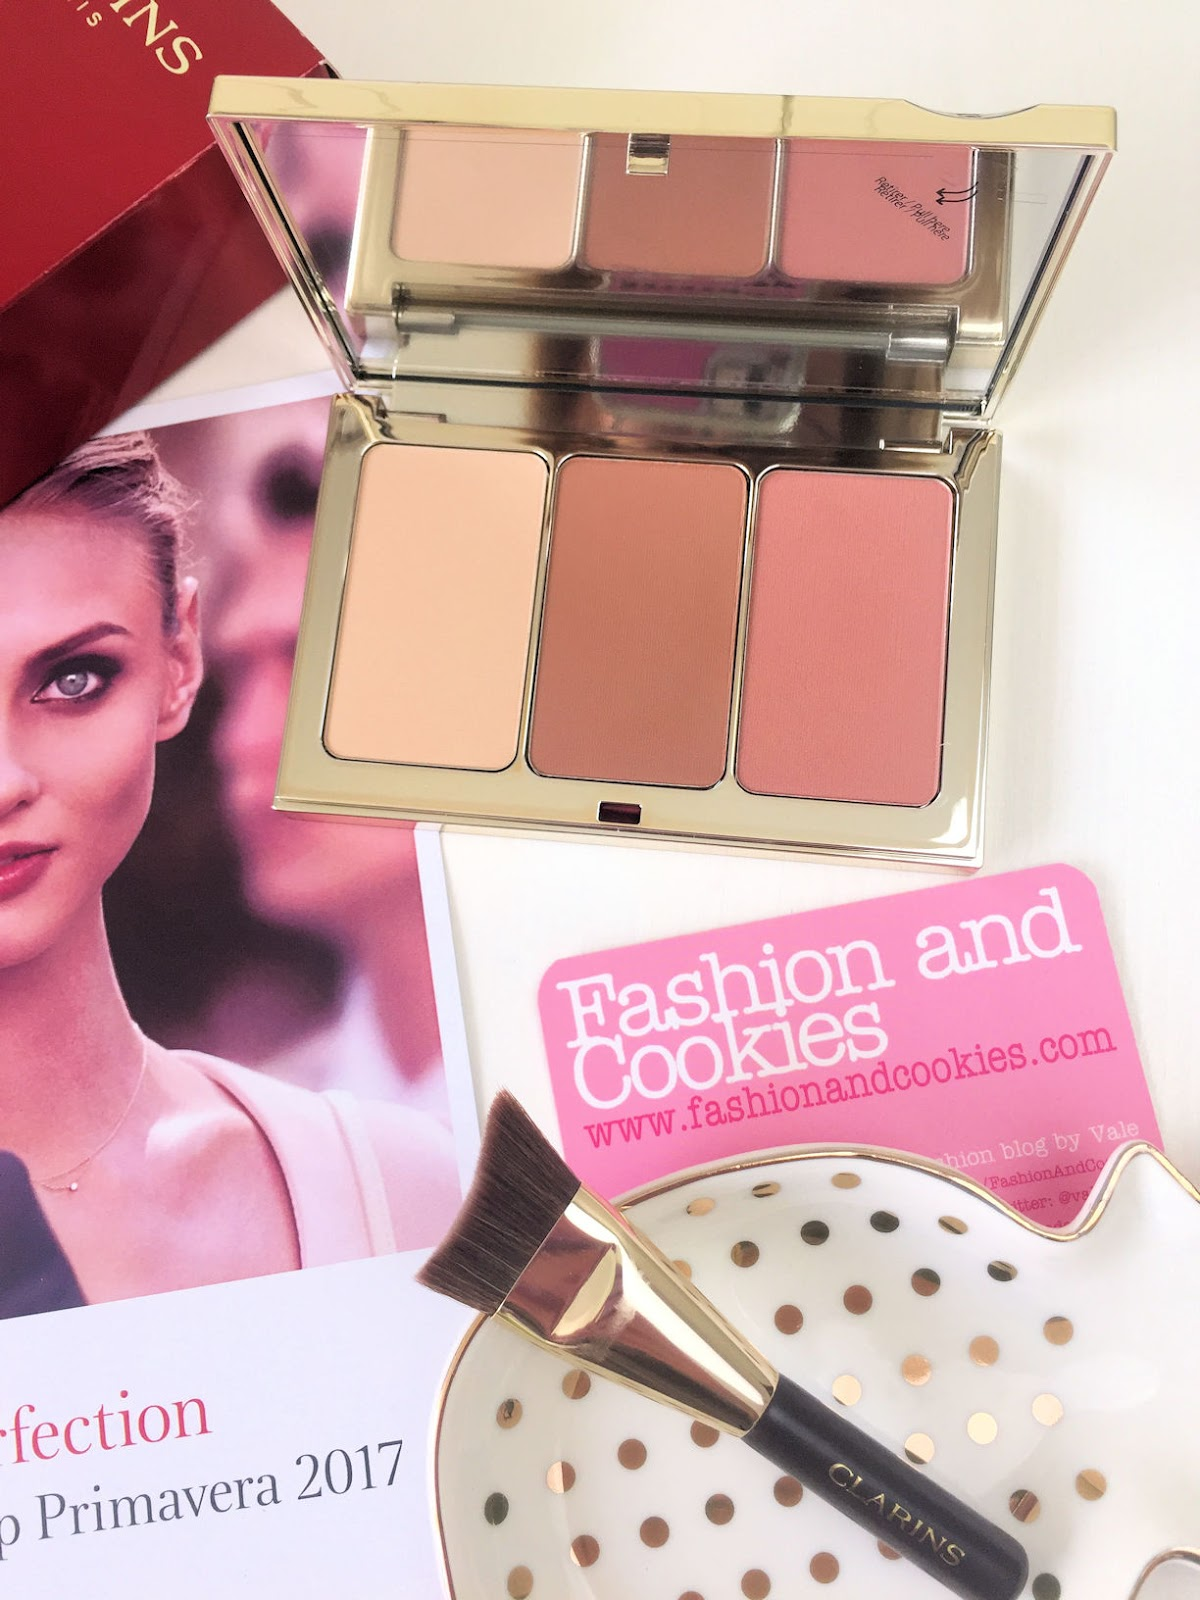 Clarins Palette Contour Visage makeup Spring 2017 su Fashion and Cookies beauty blog, beauty blogger